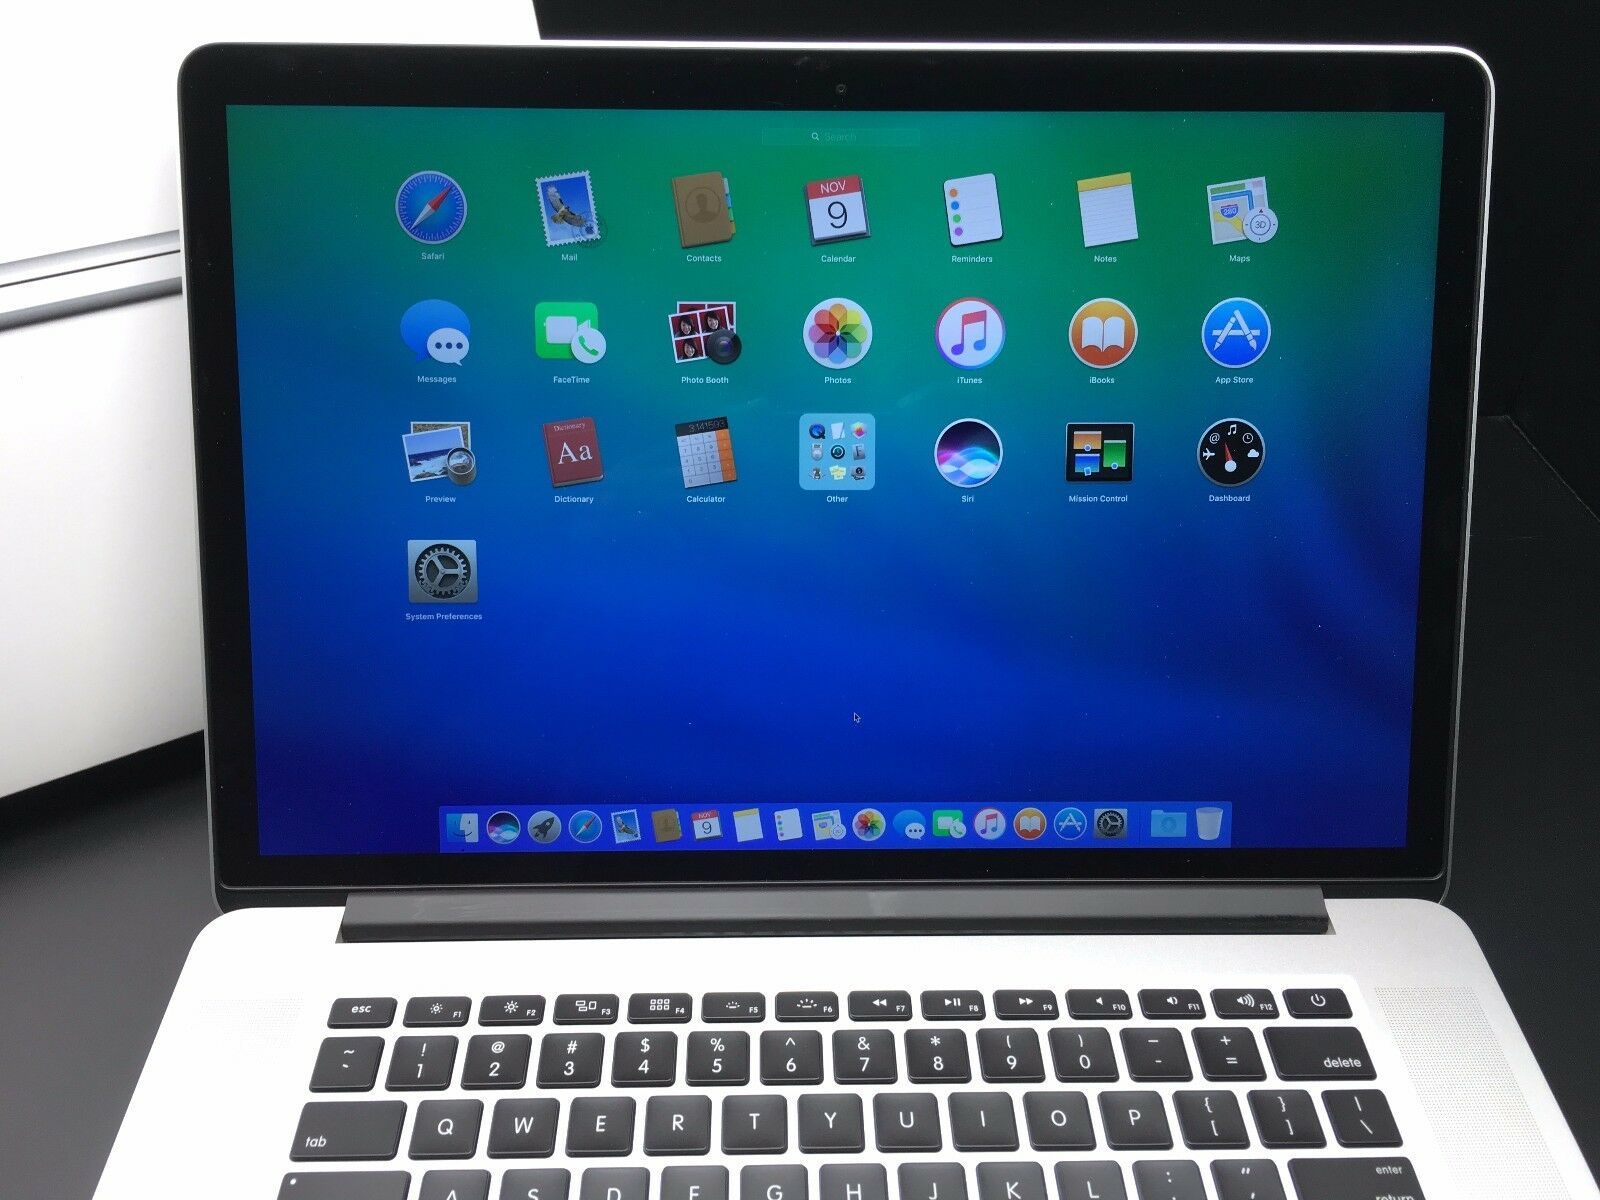 "Macbook Pro - Apple Macbook Pro 15"" Retina 2013-2014 / OSX-2015 / 512GB+ / Three Year Warranty"